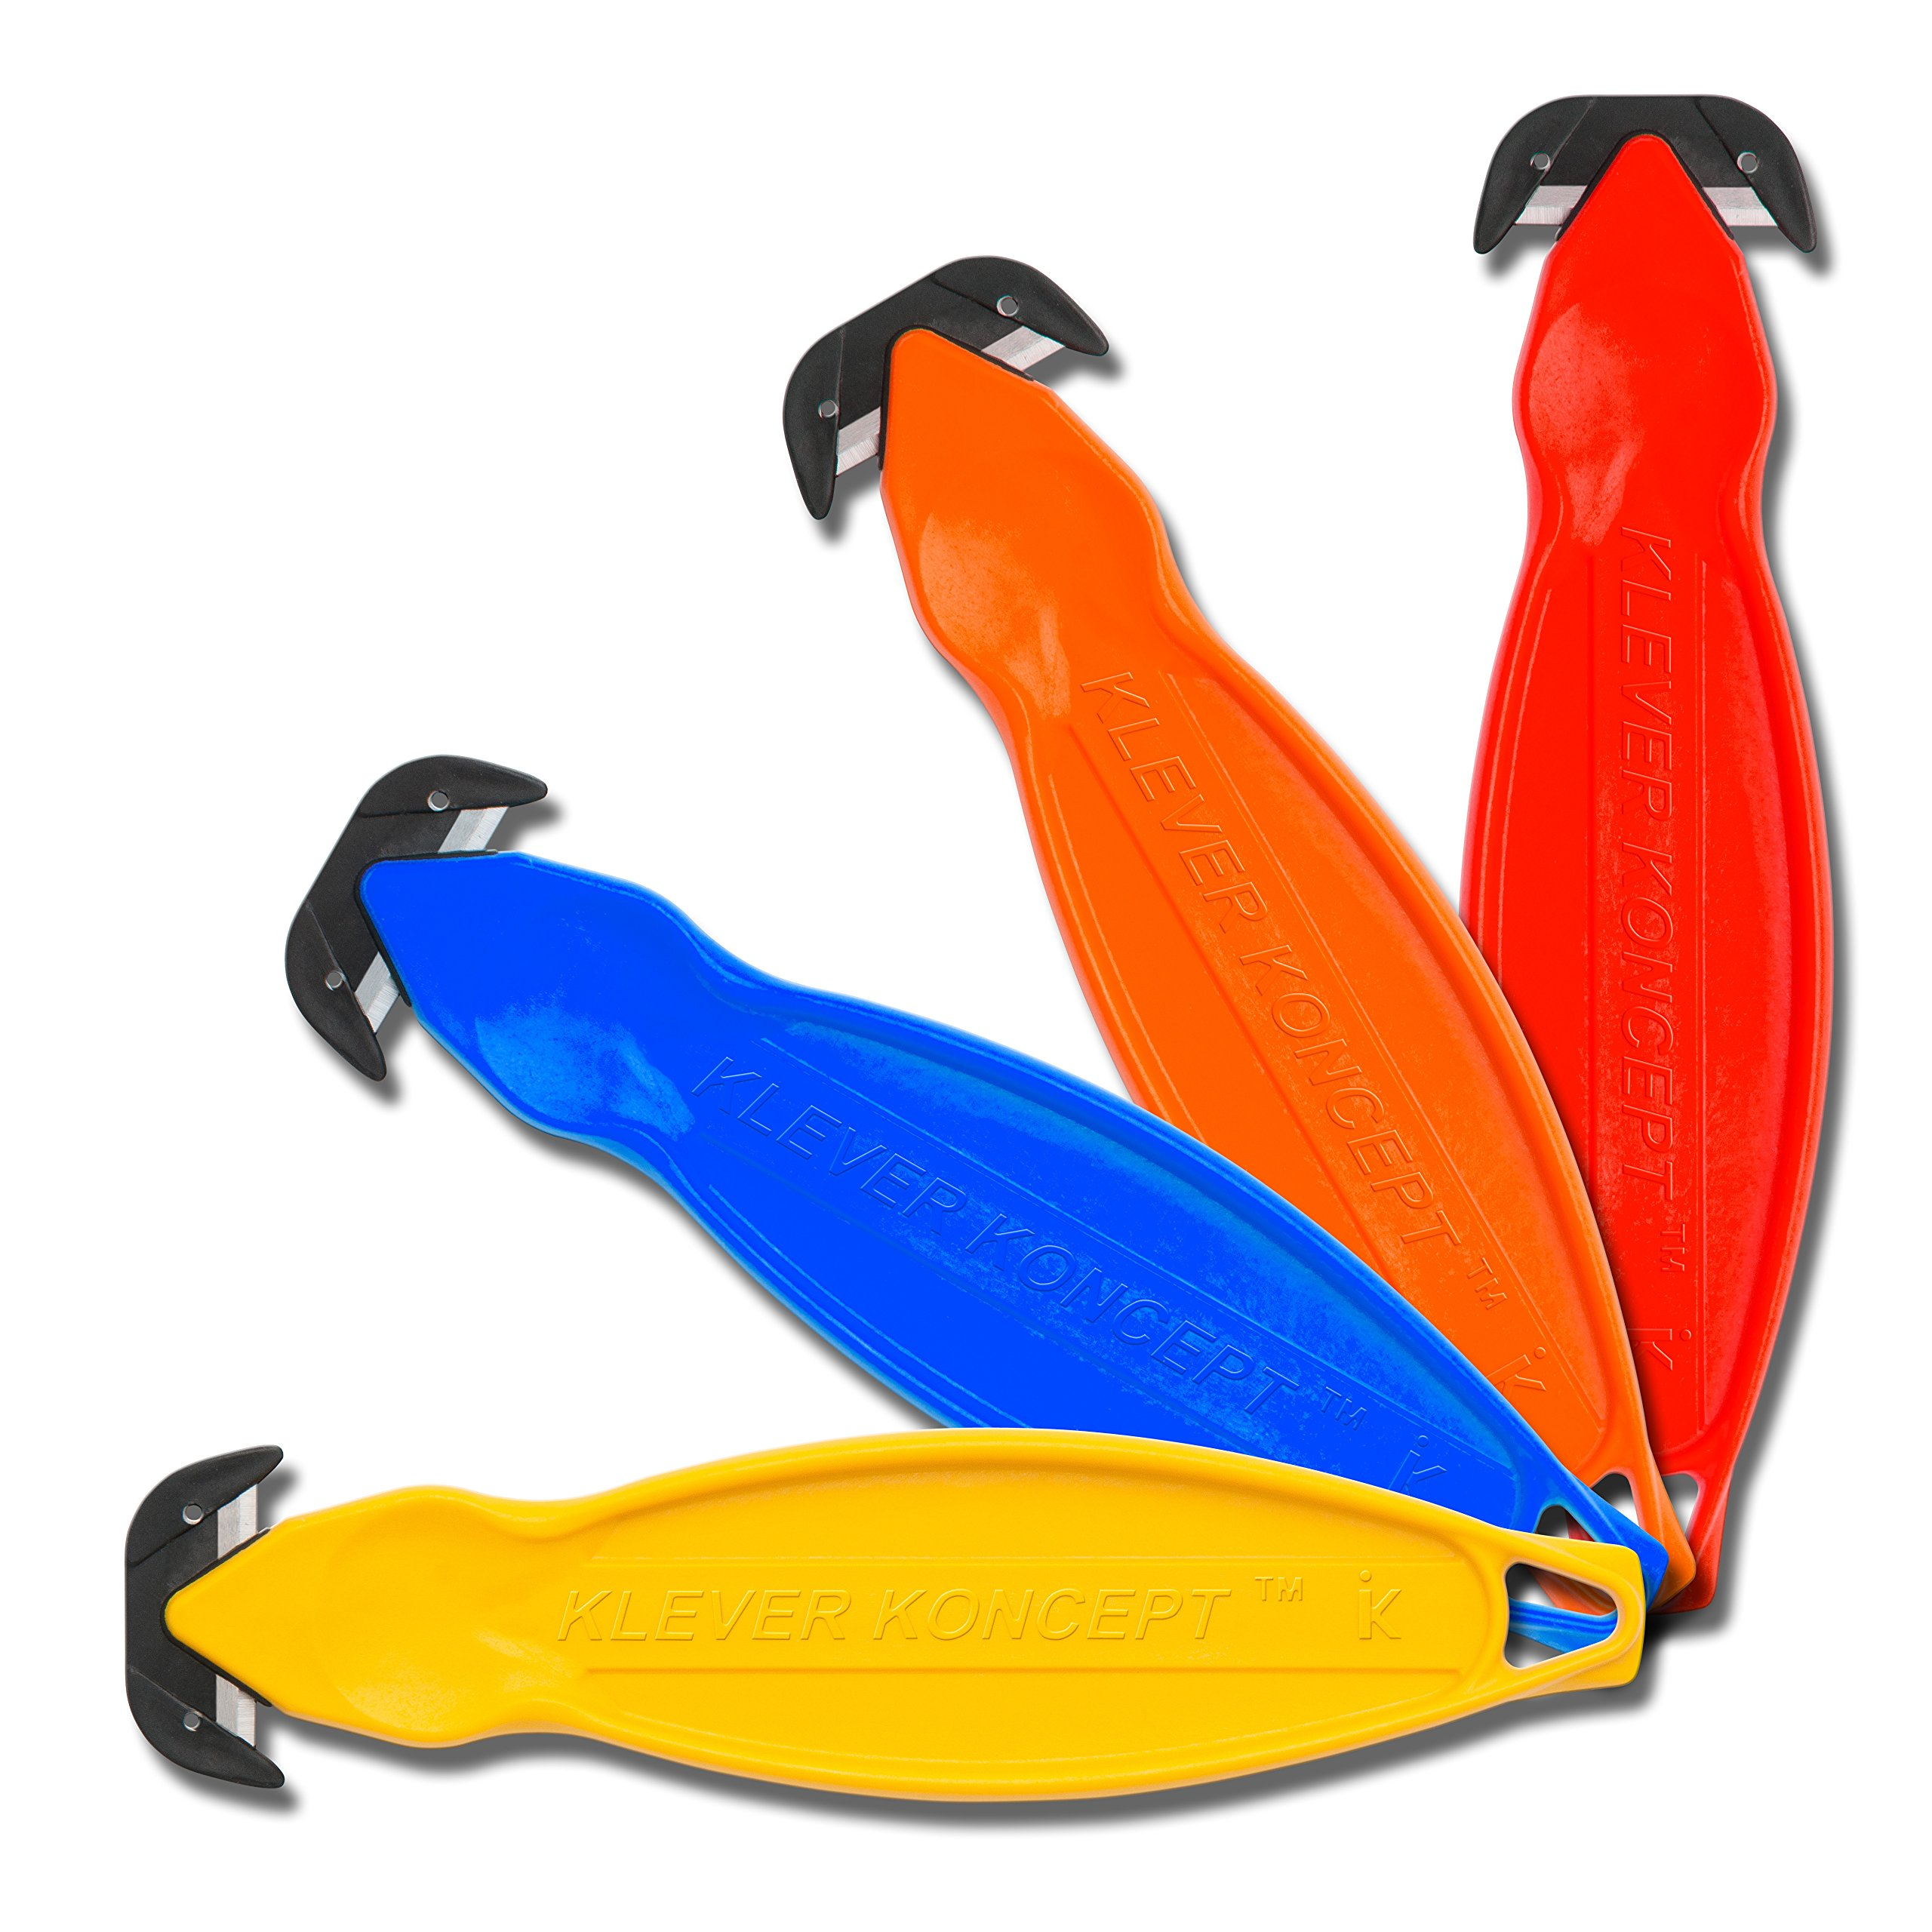 Klever Koncept Safety Cutters, Assorted Colors, Pack Of 50